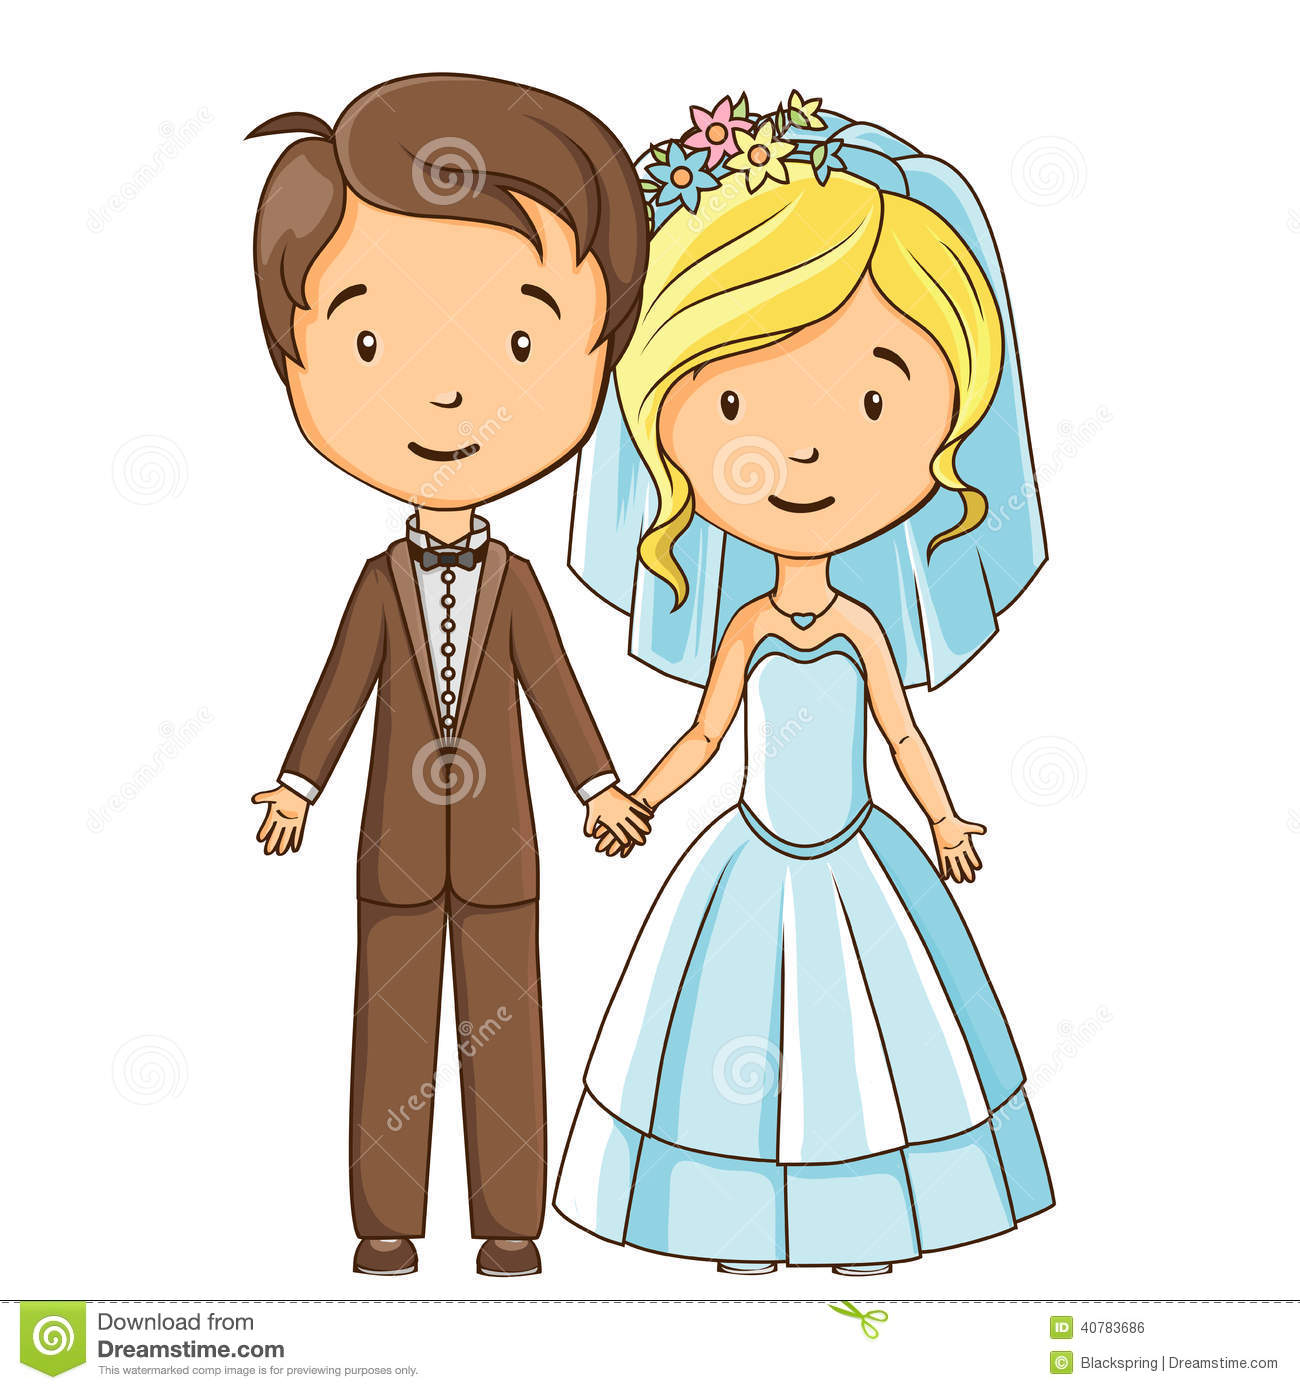 cartoon style bride and groom stock vector illustration of dress rh dreamstime com bride and groom cartoon image indian bride and groom cartoon images